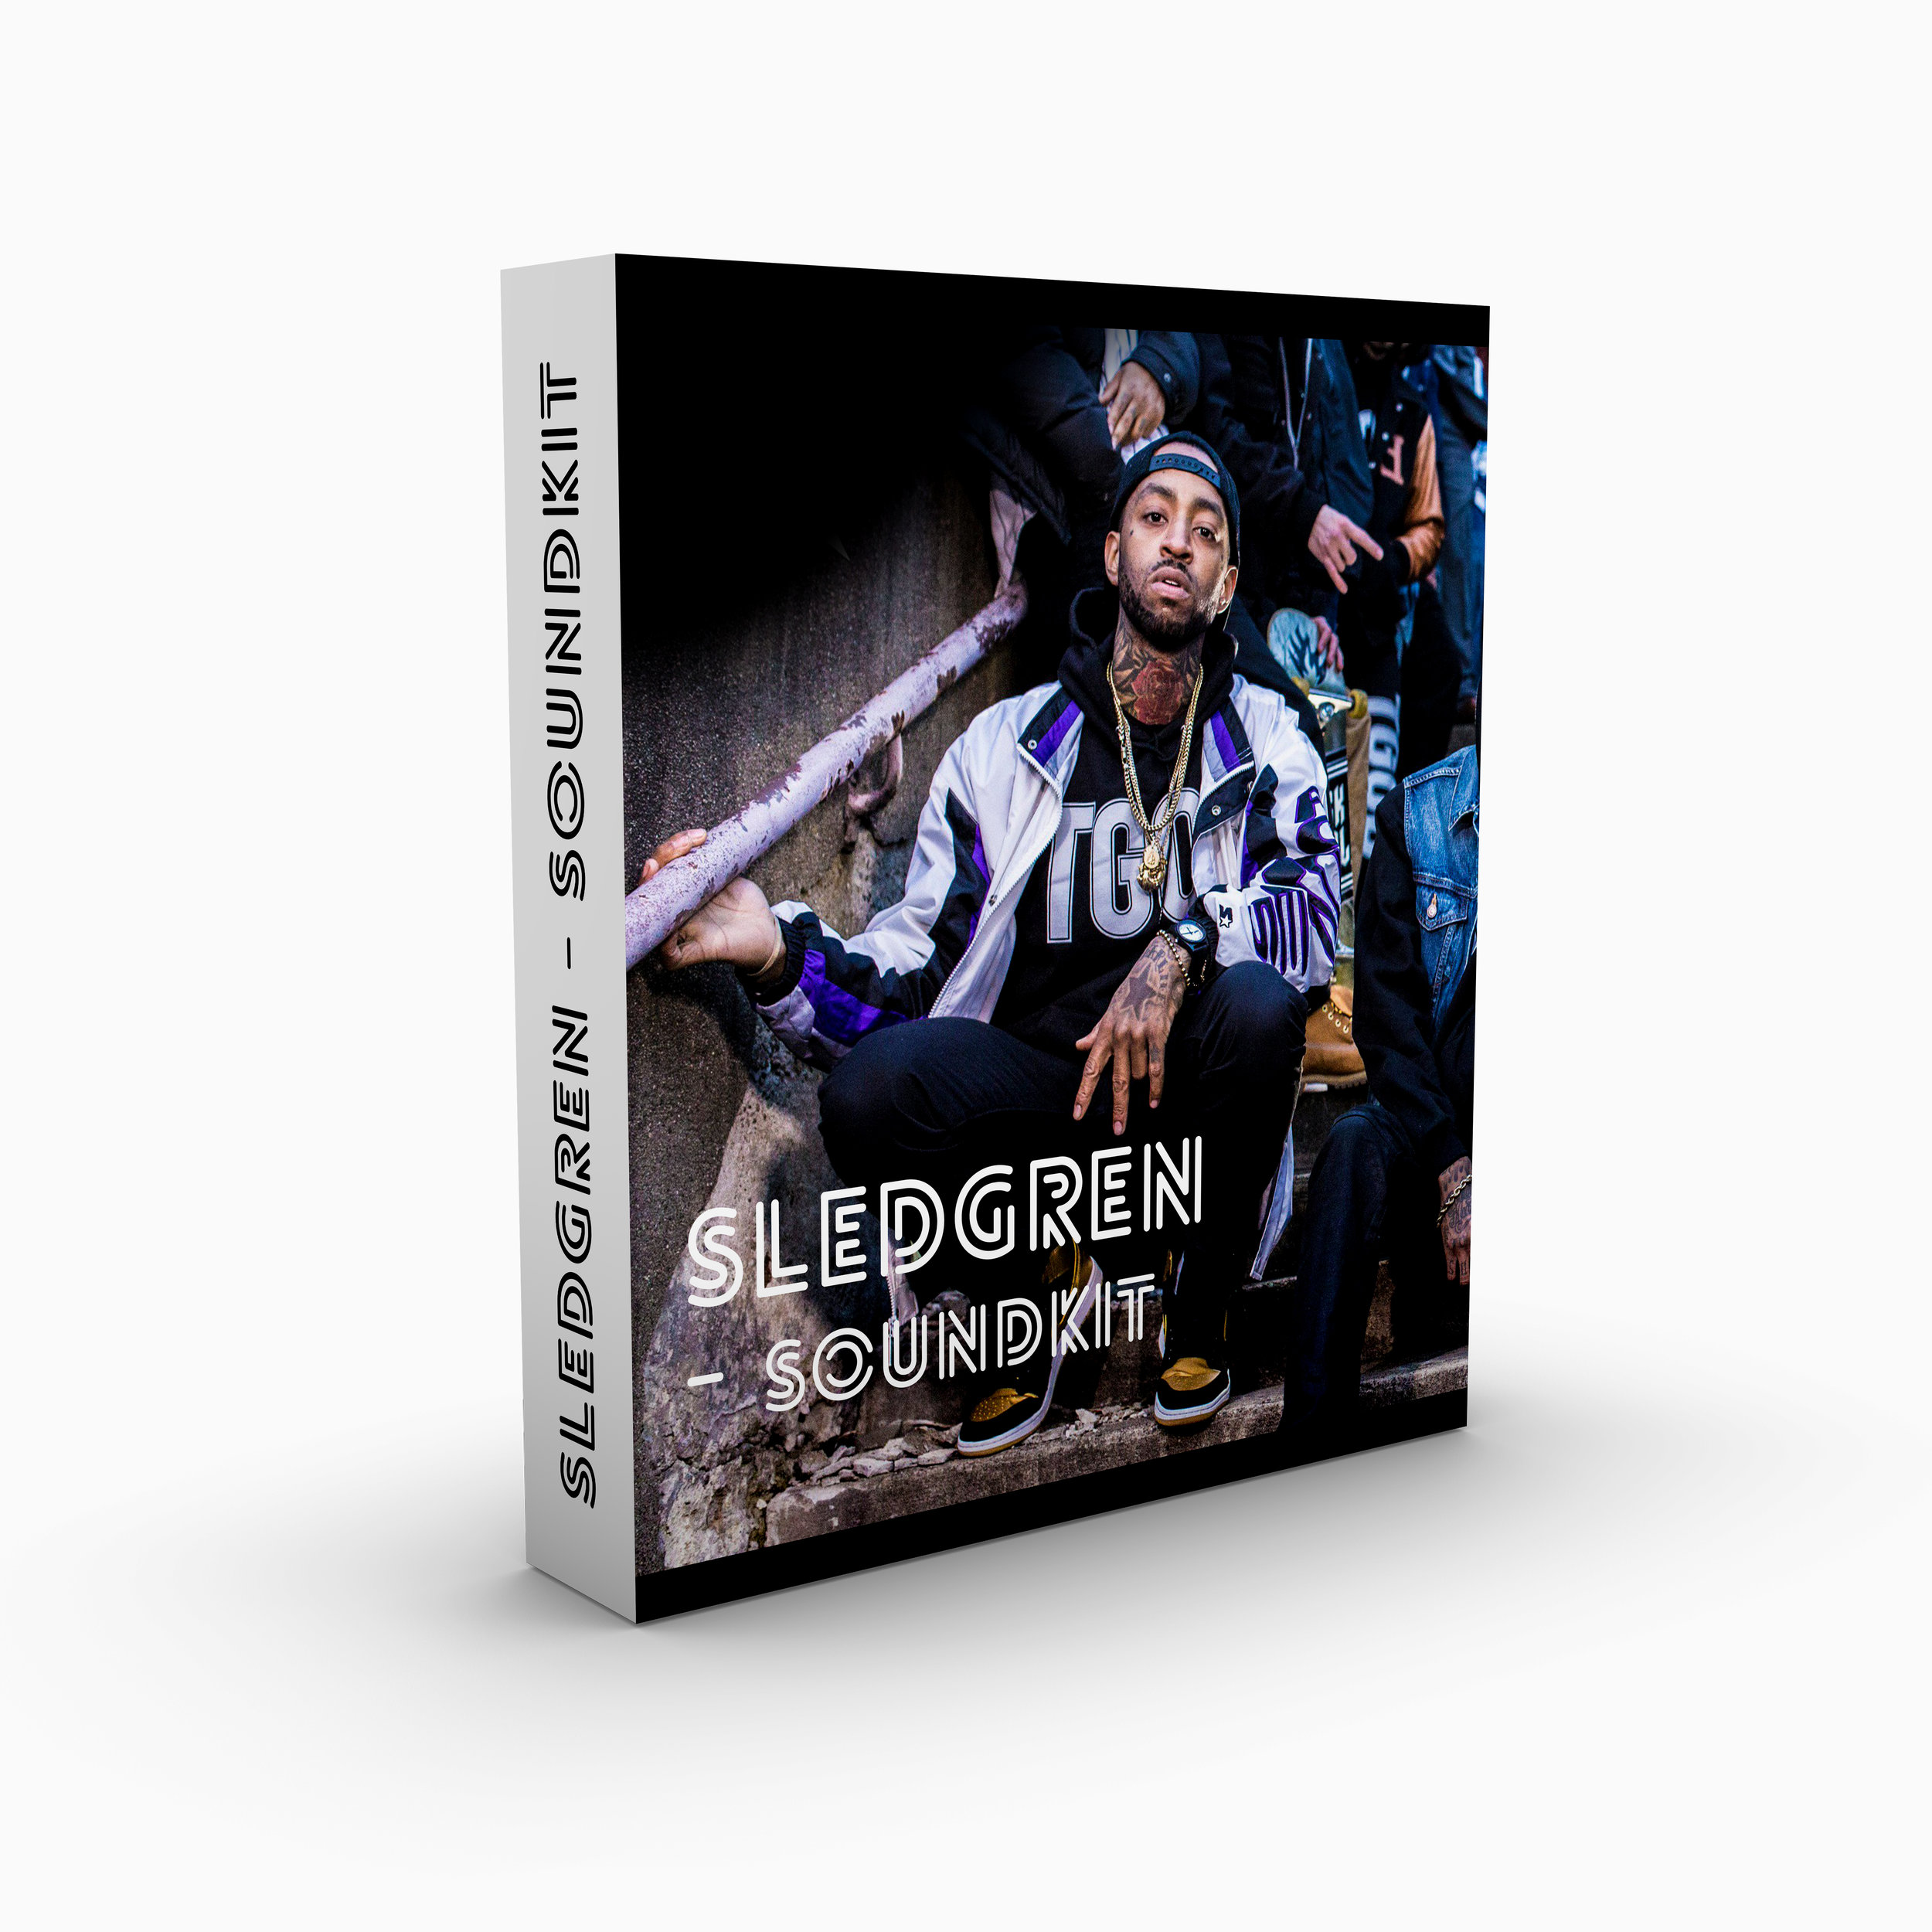 sledgren drum kit